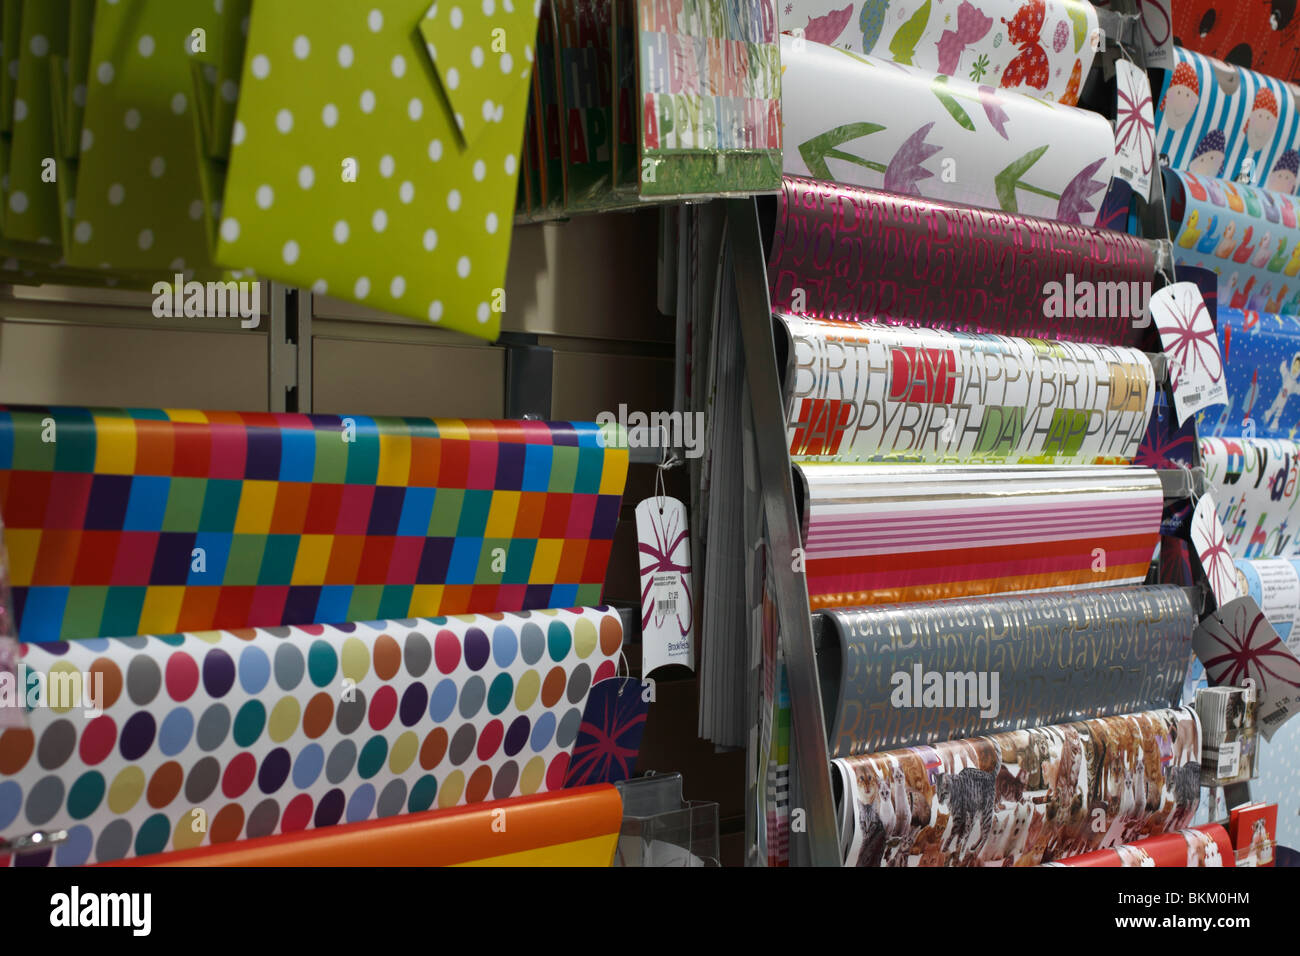 Brookfields wrapping paper Garden Centre Photo Stock